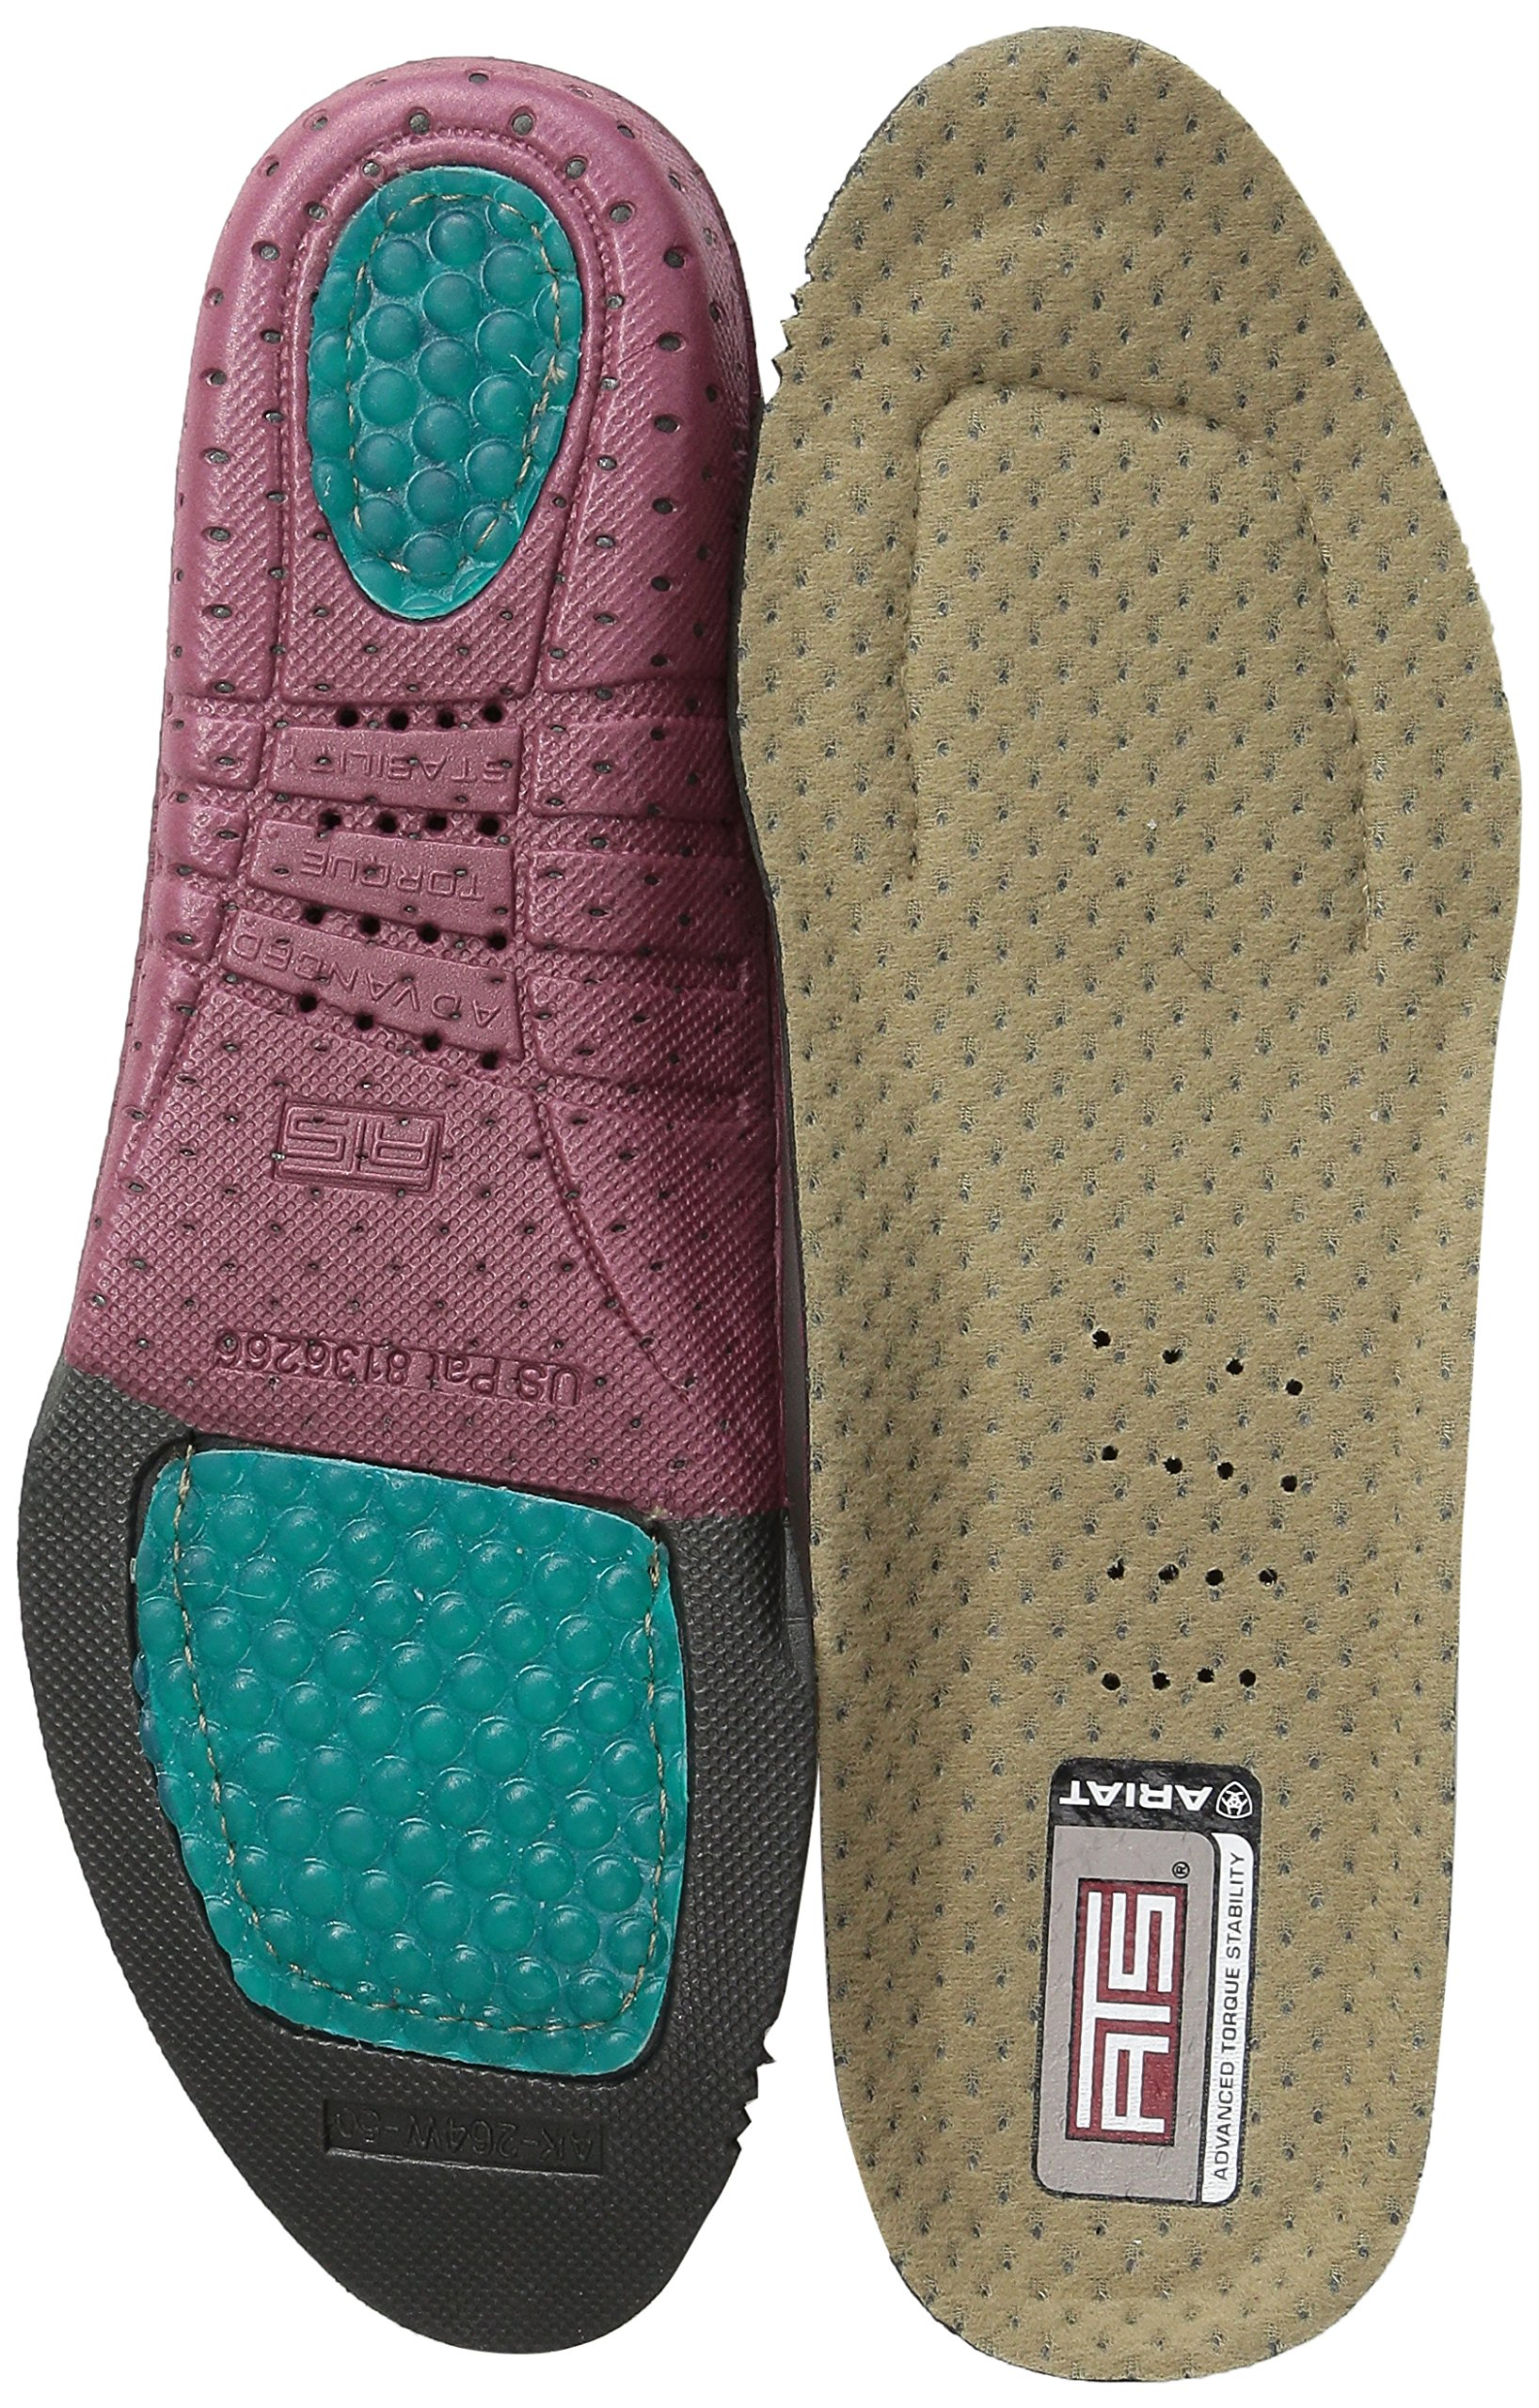 Womens Footbed Insole Apparel Accesory